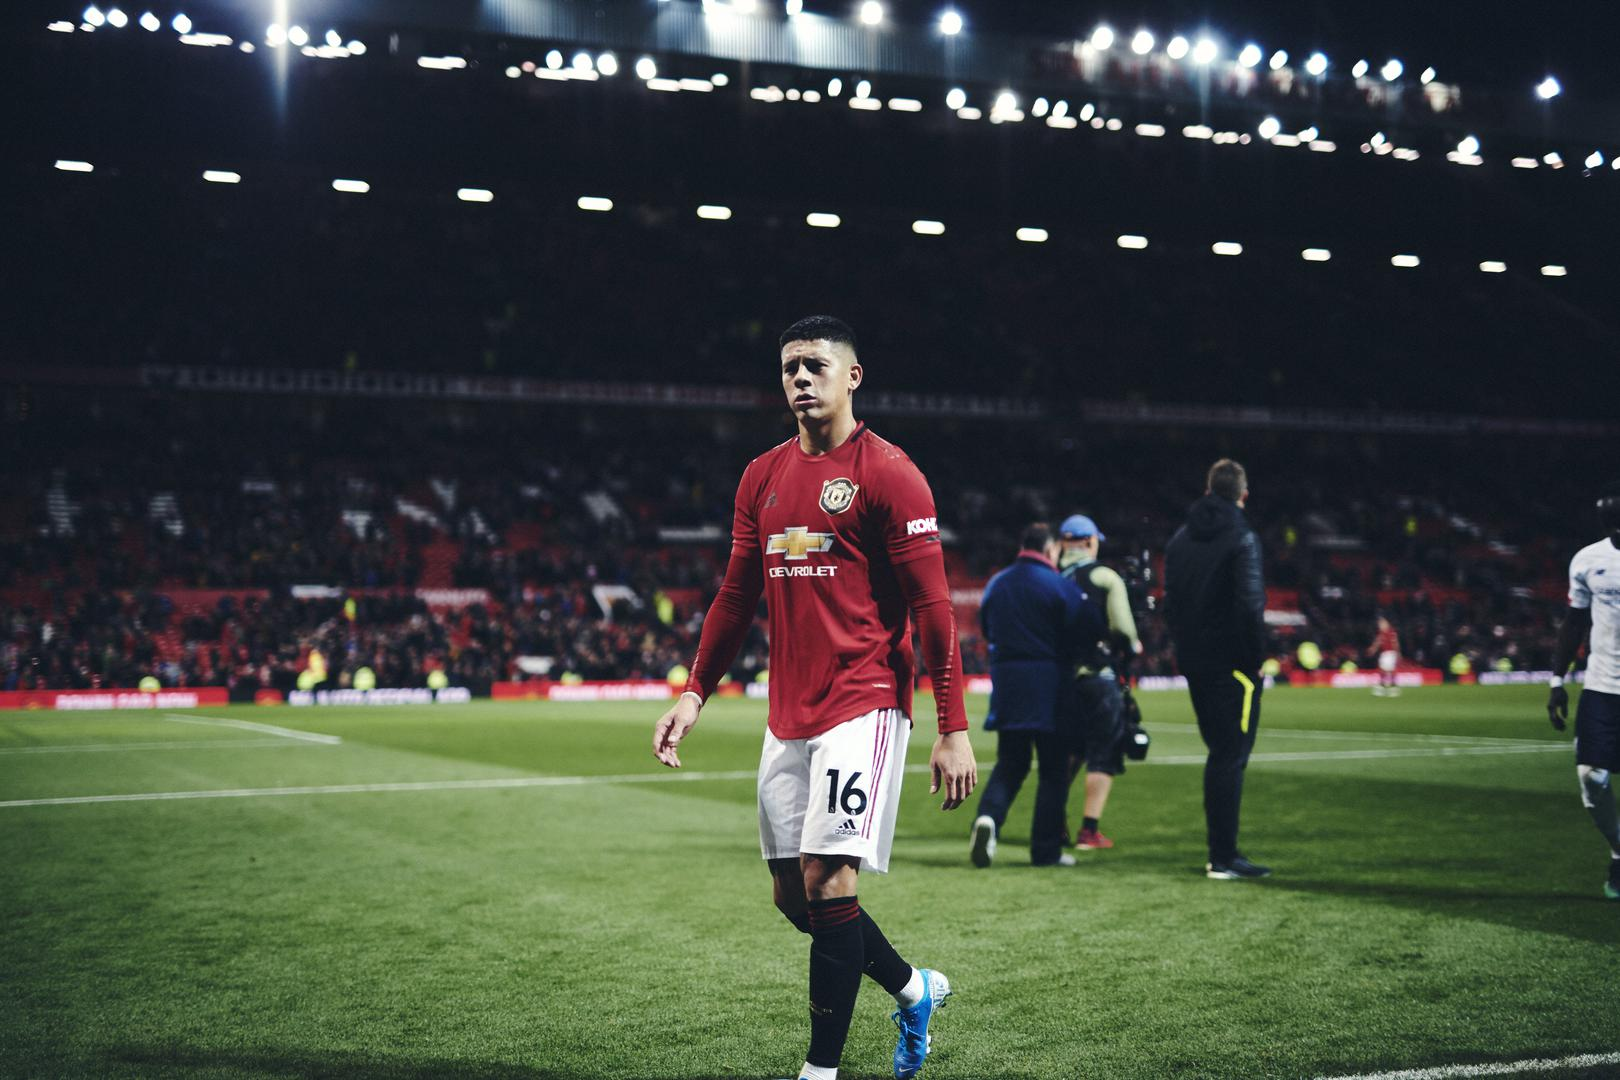 Marcos Rojo after the 1-1 draw with Liverpool.